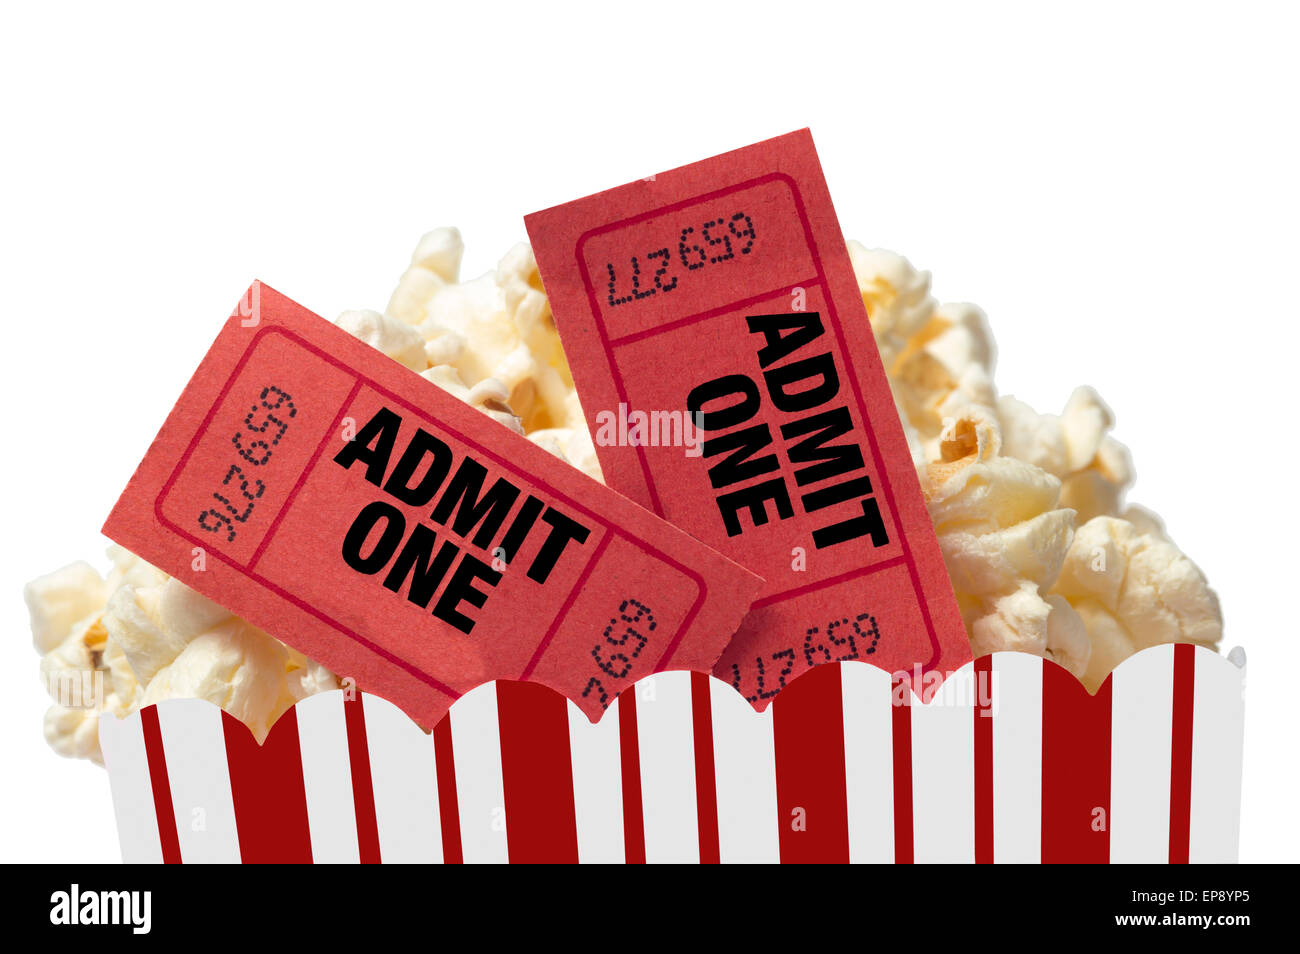 Movie Night With Popcorn And Red Movie Ticket Stubs - Stock Image